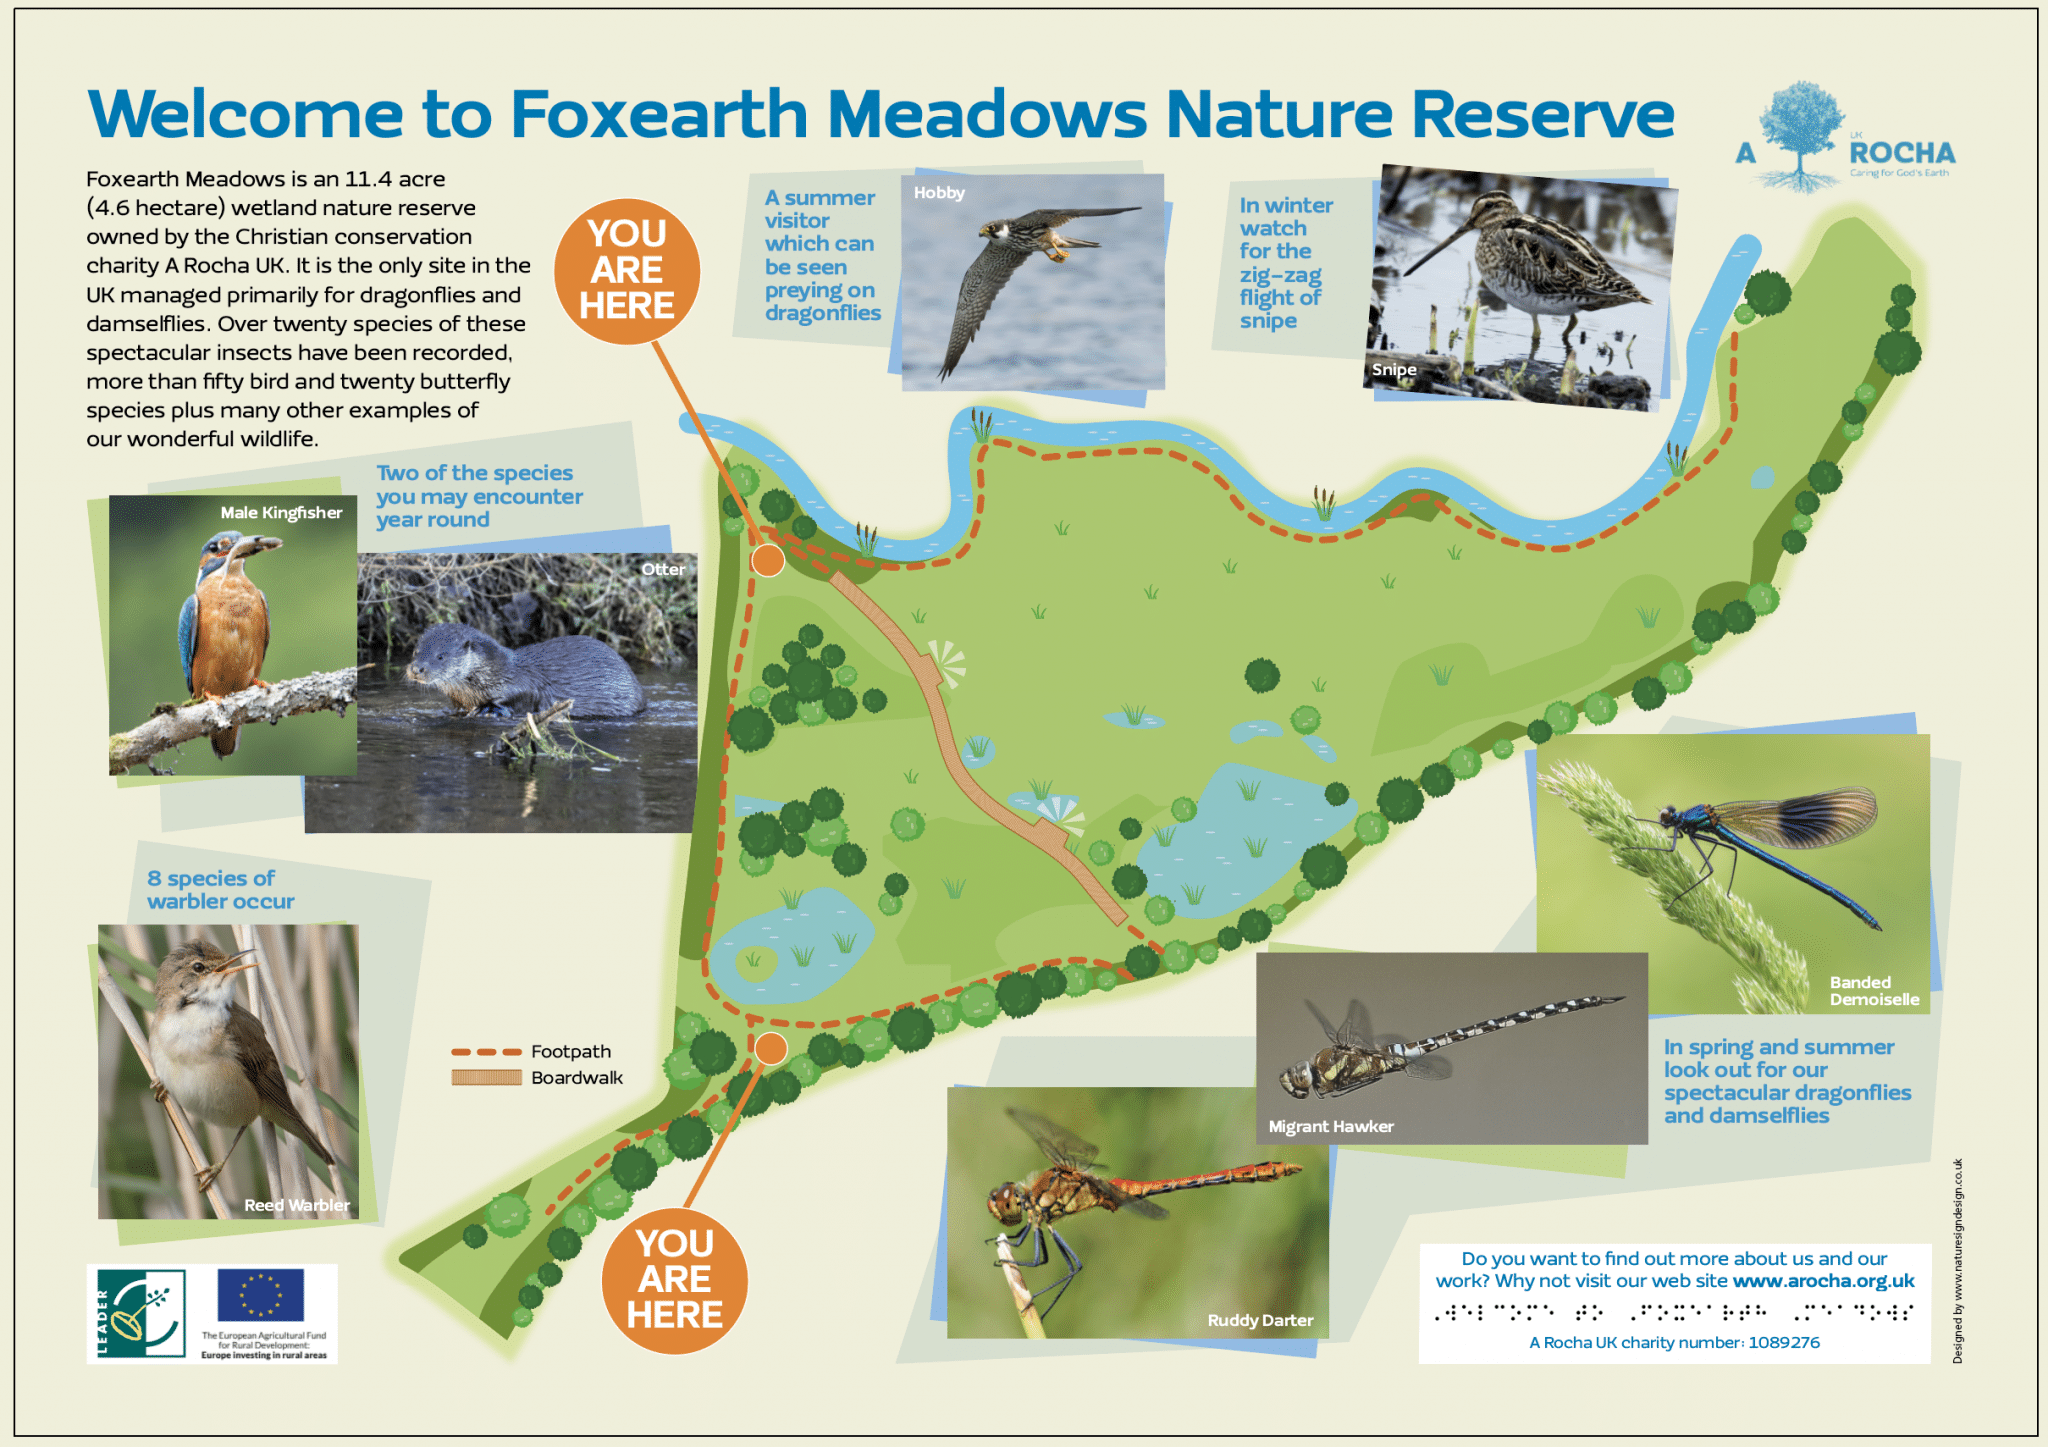 Map of Foxearth Meadows